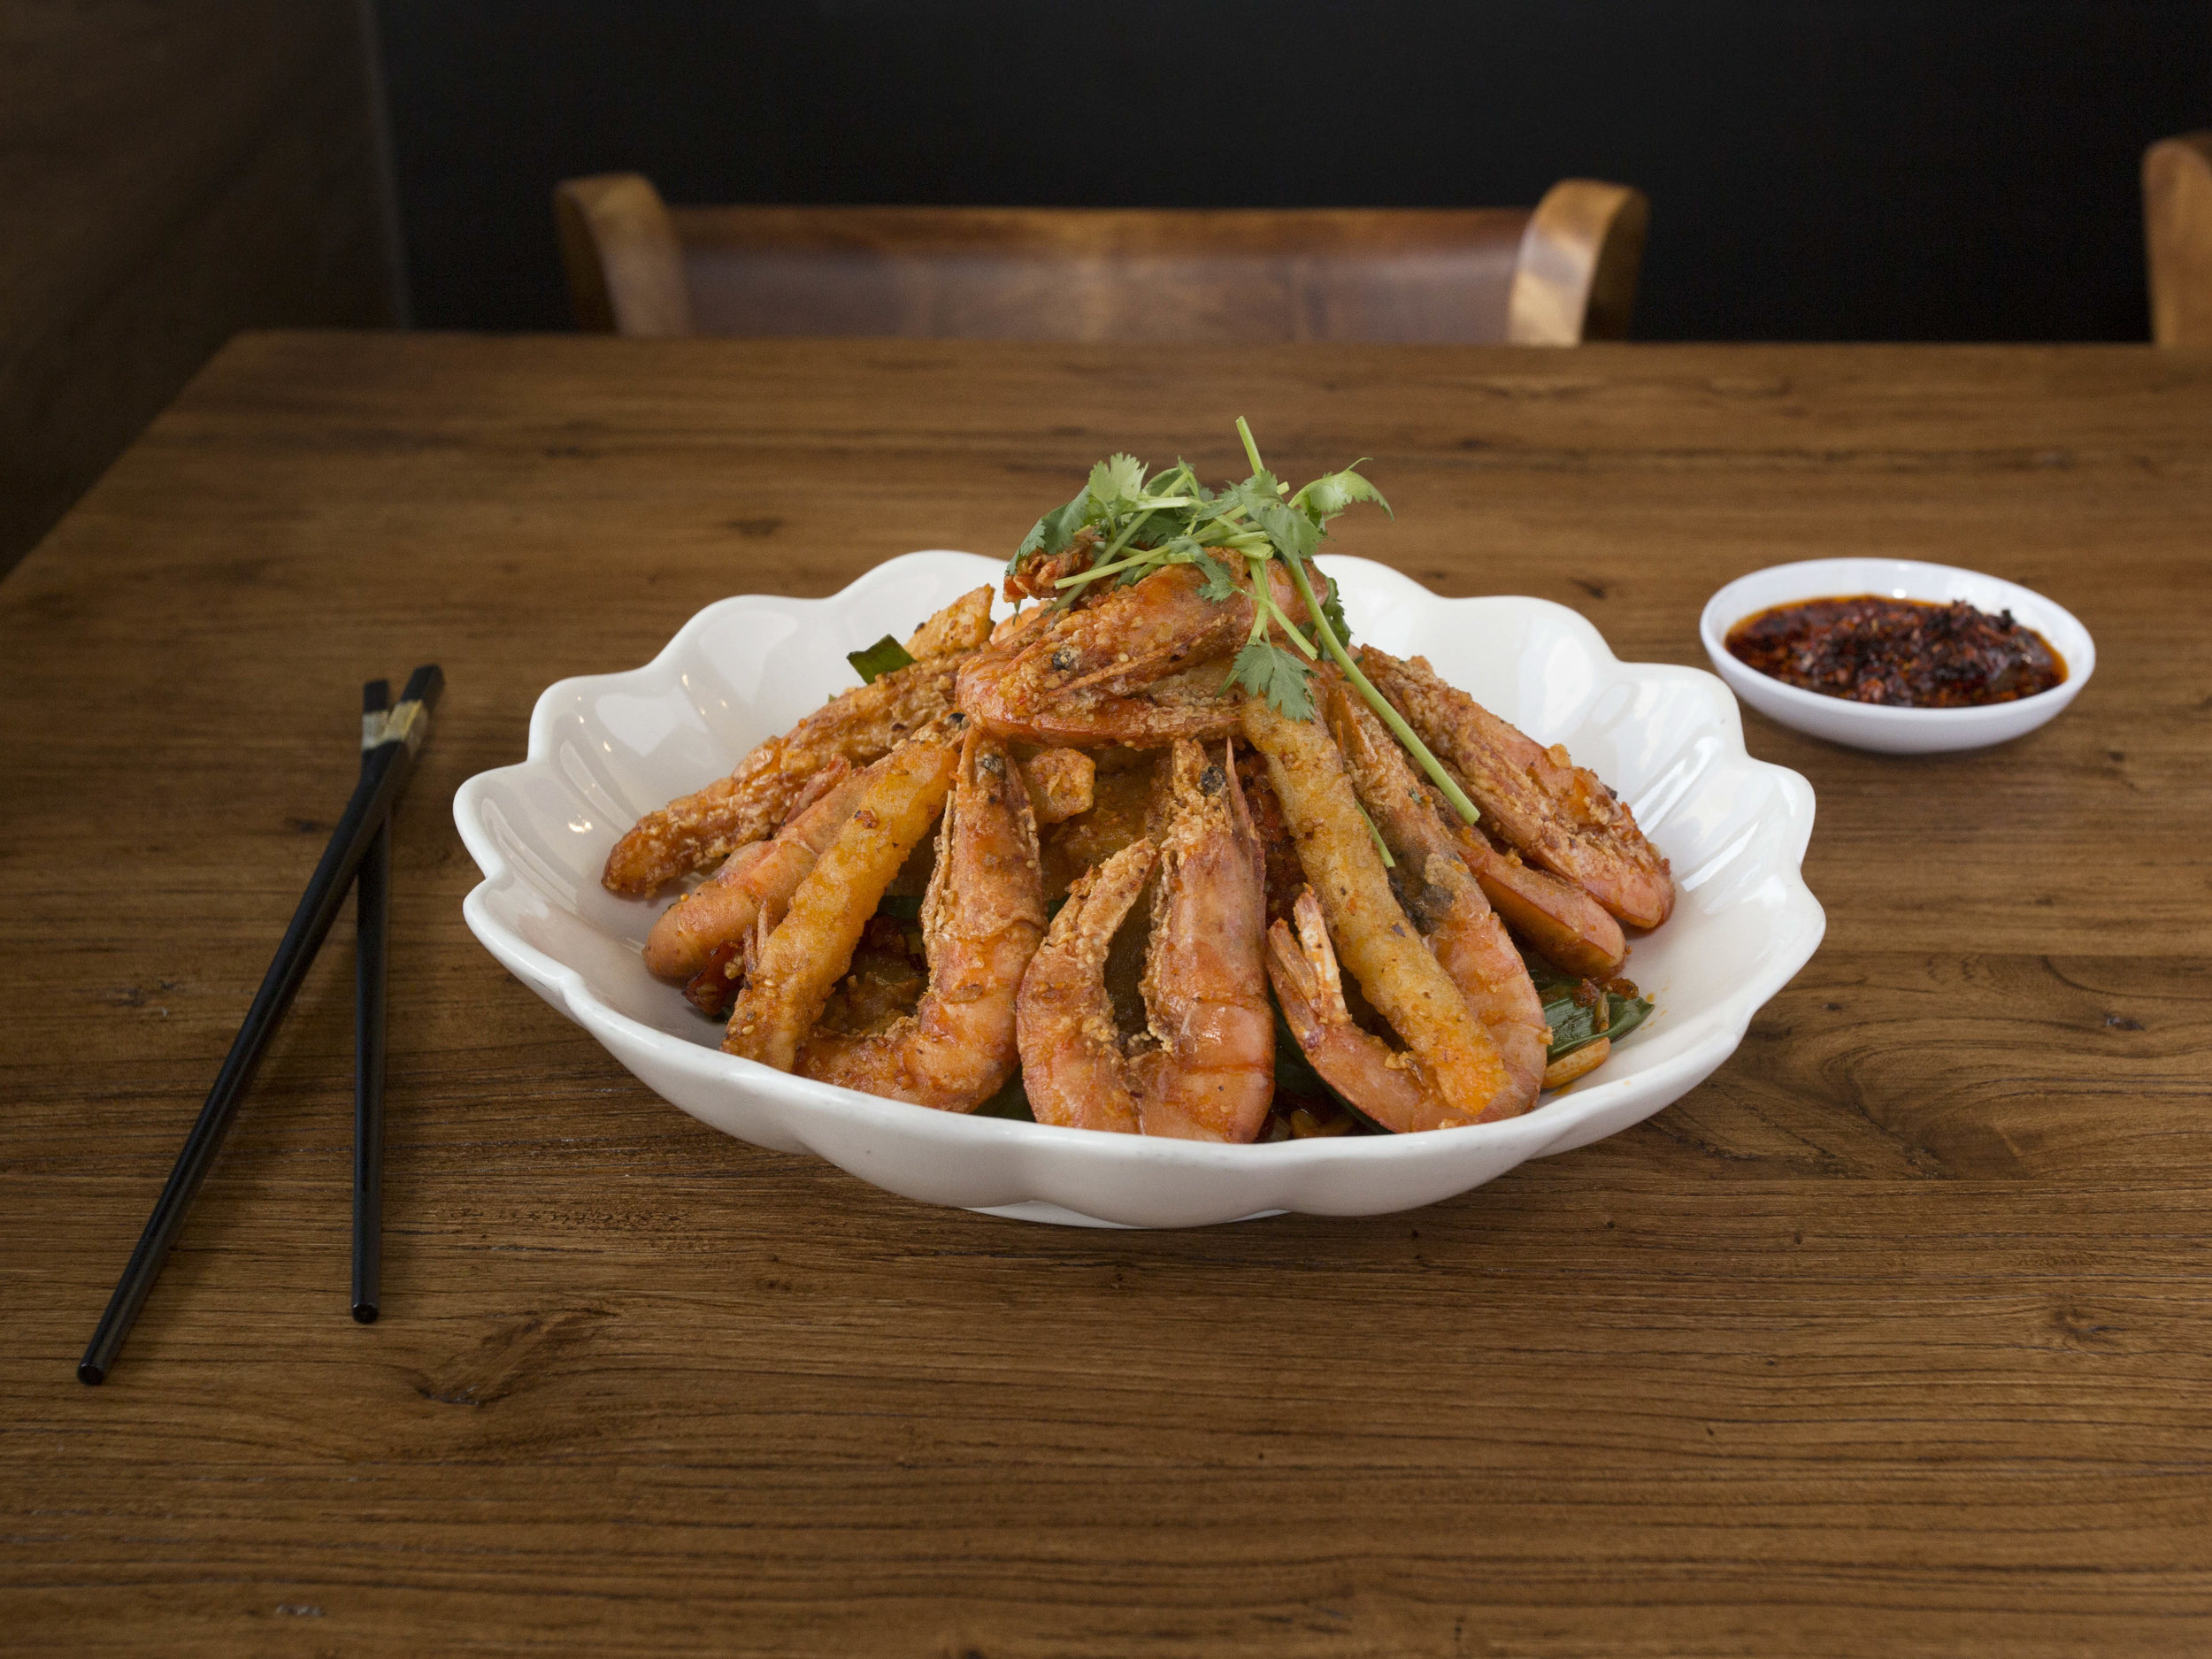 Flower Peppers_Szechuan Chili Shrimp with French Fries1.jpg